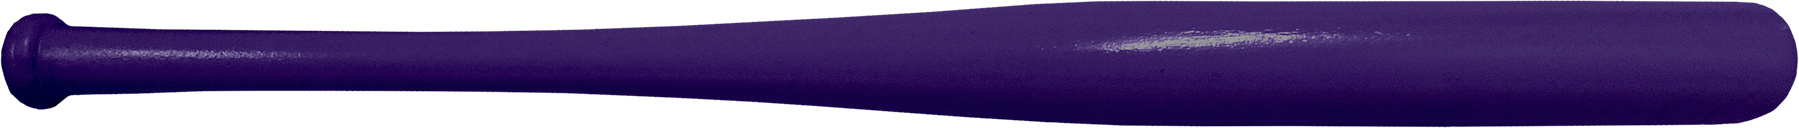 novelty purple baseball bat souvenir baseball bat